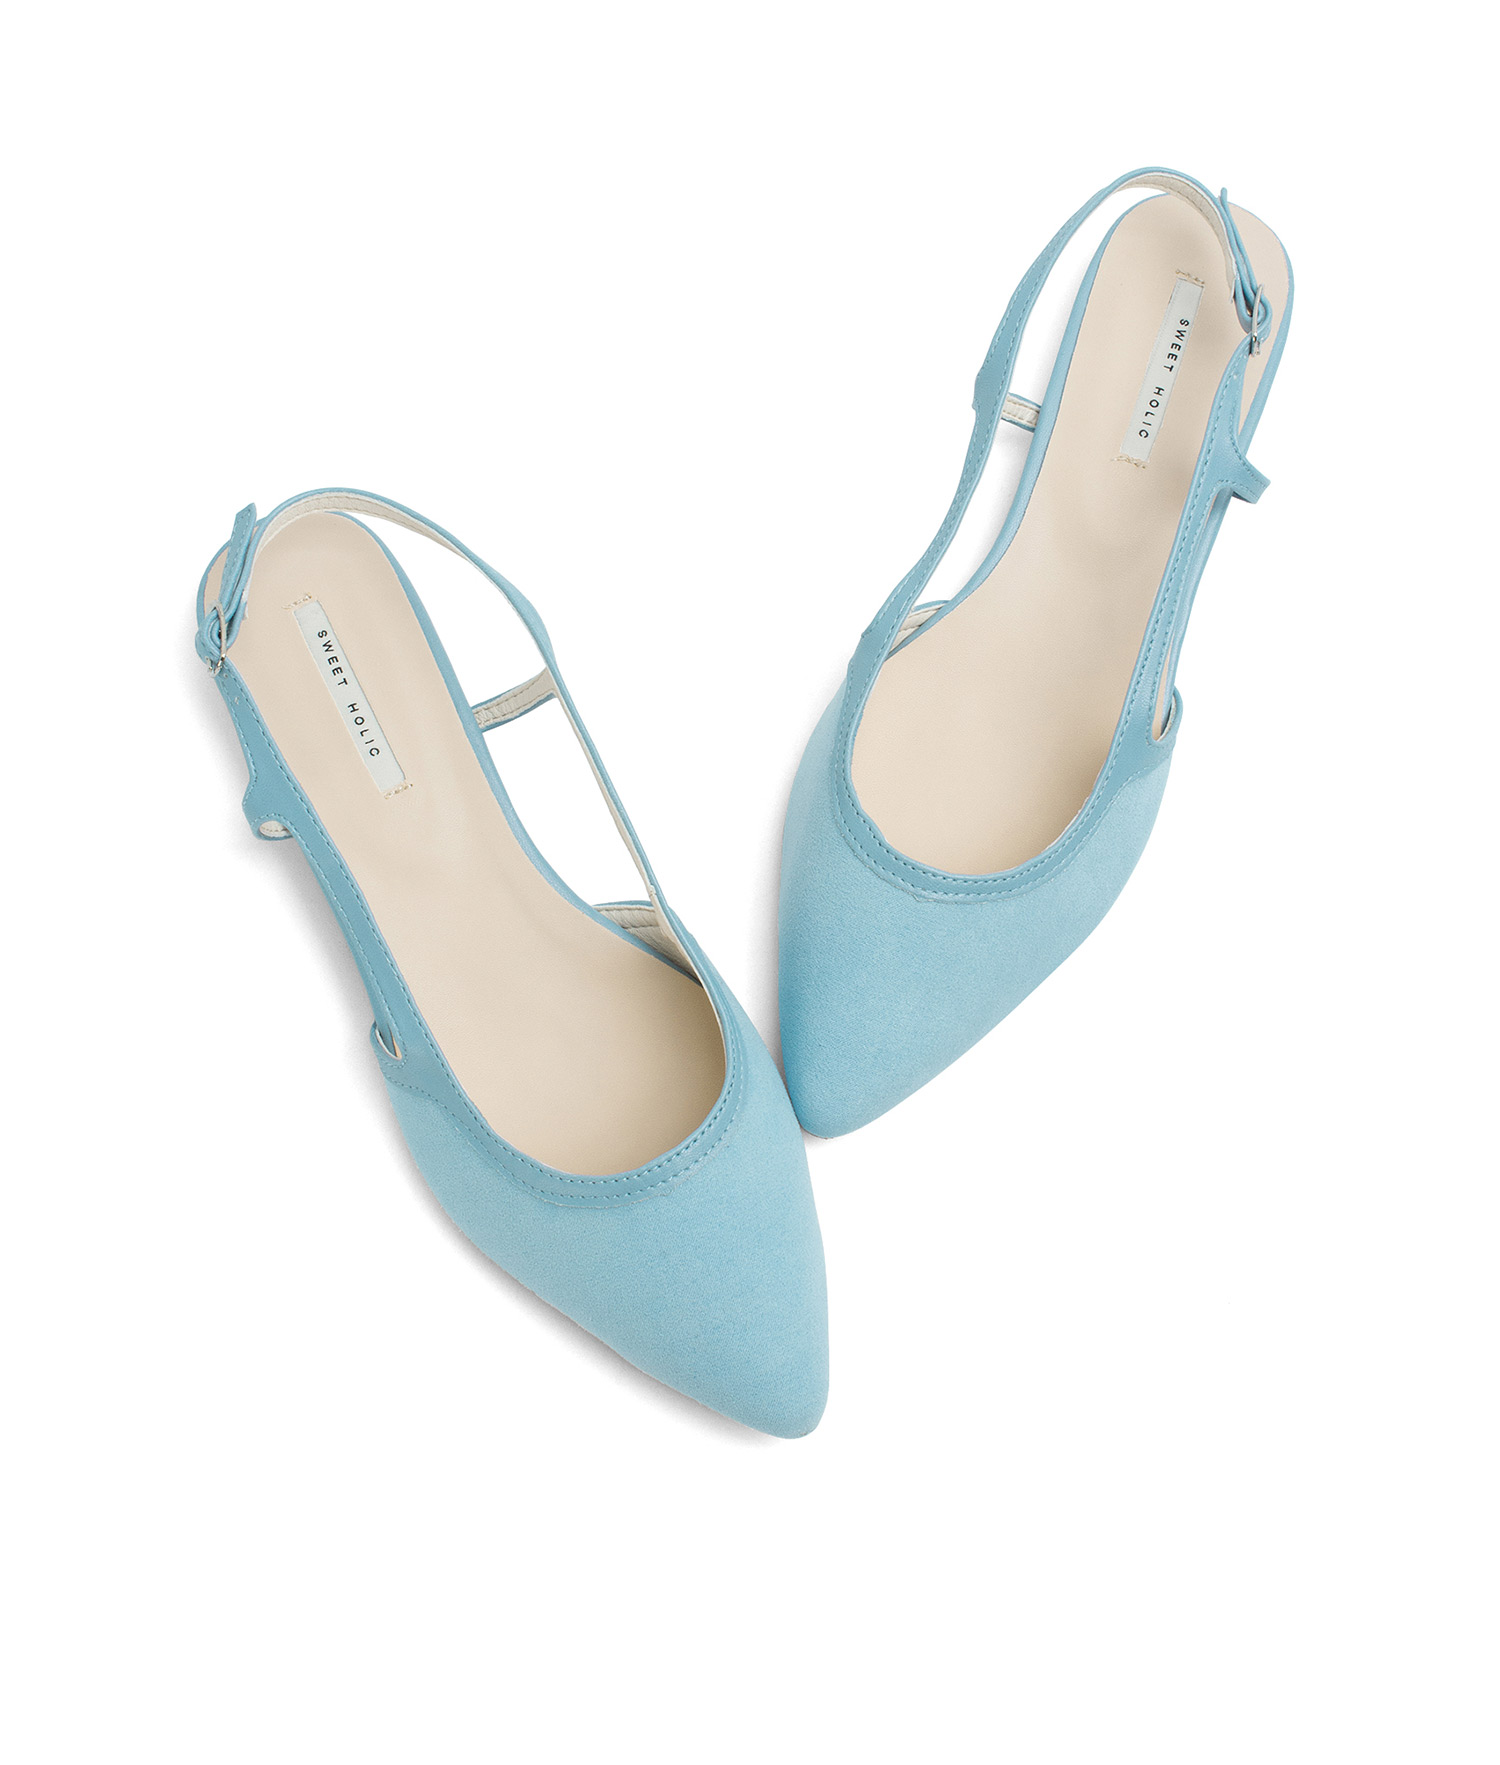 7b59288cac499 AnnaKastle Womens Faux Suede Pointed Toe Slingback Flats Light Blue